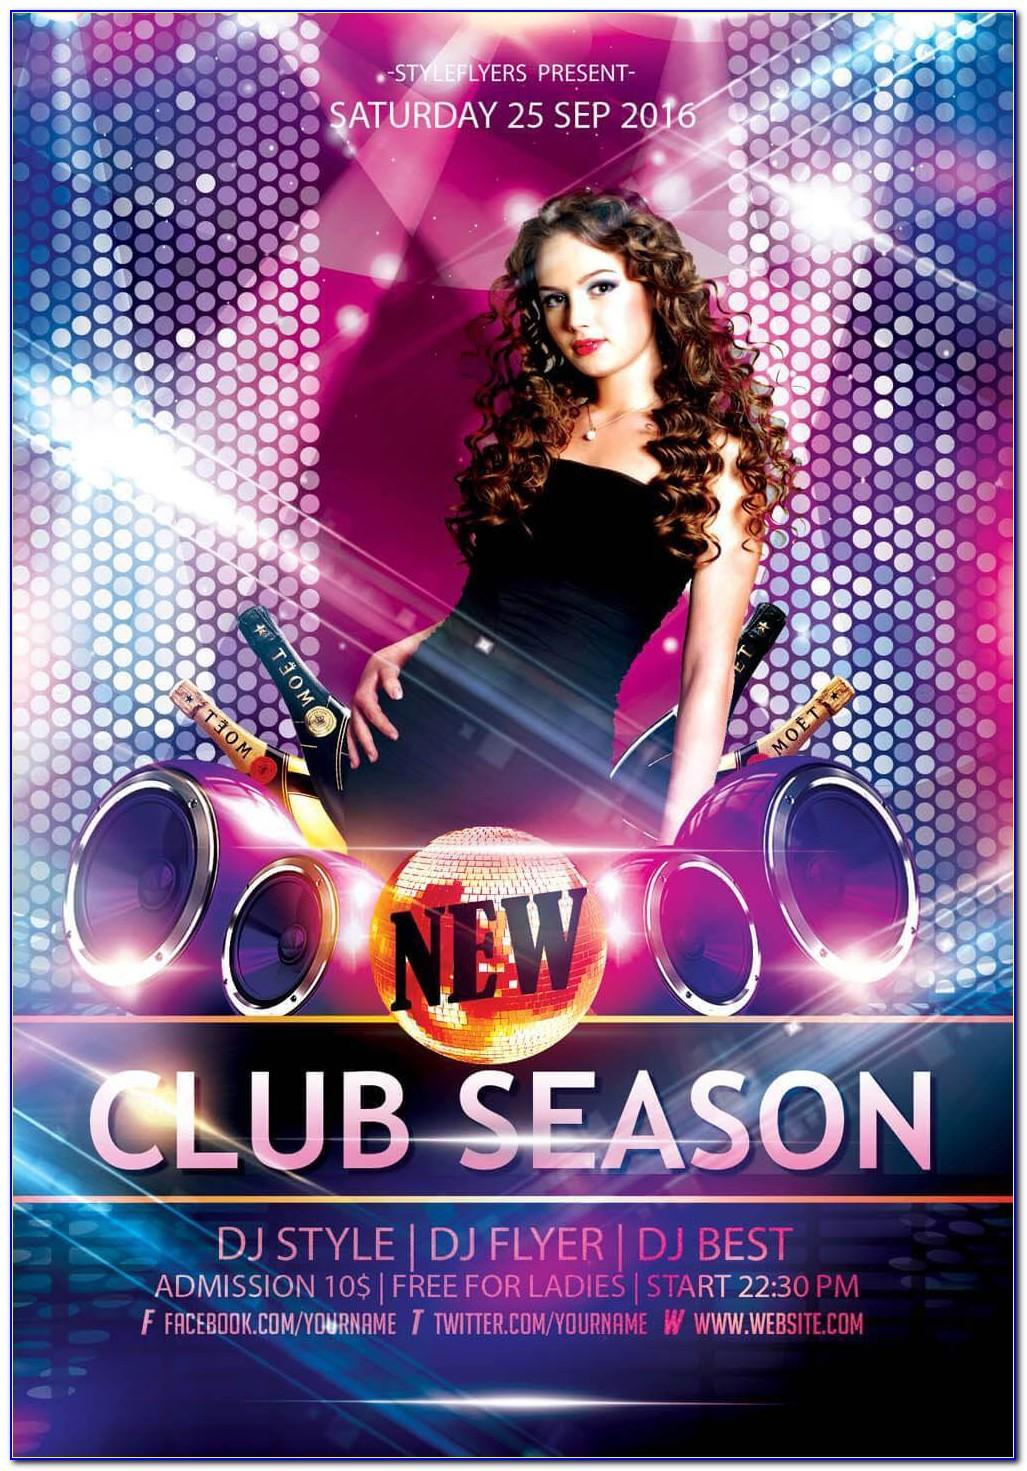 Nightclub Poster Template Psd